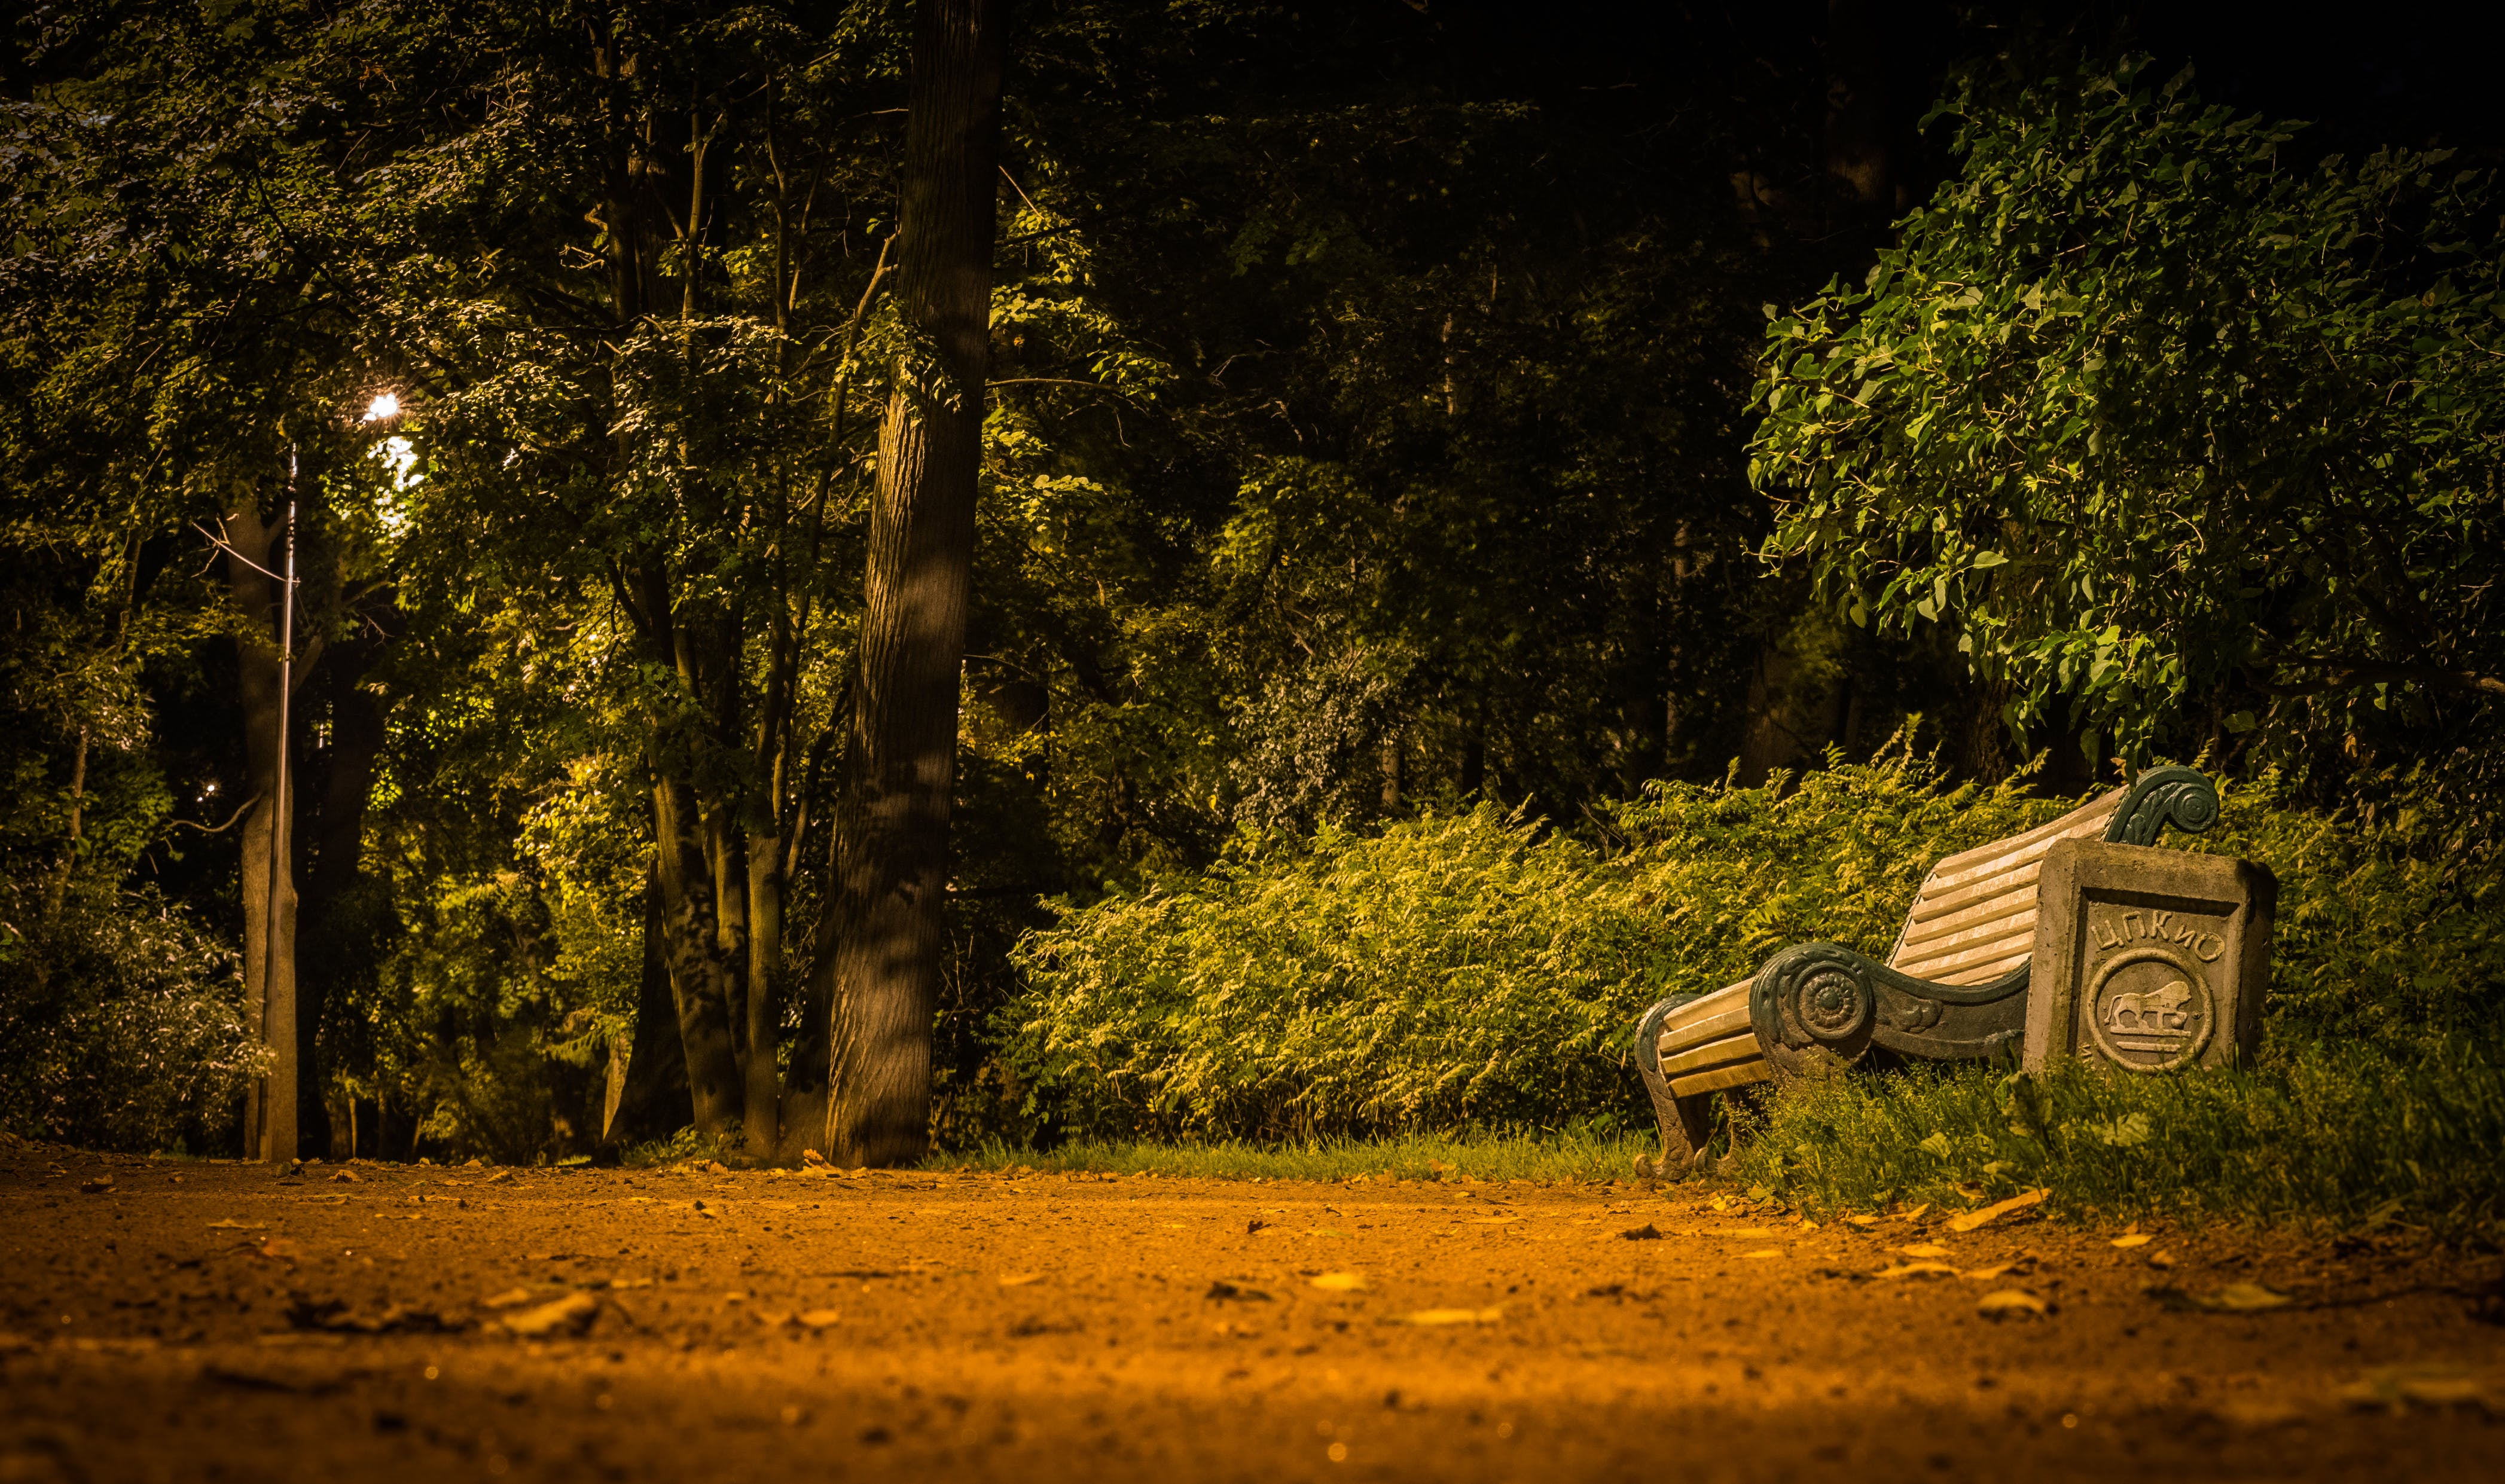 Free stock photo of bench, landscape, trash can